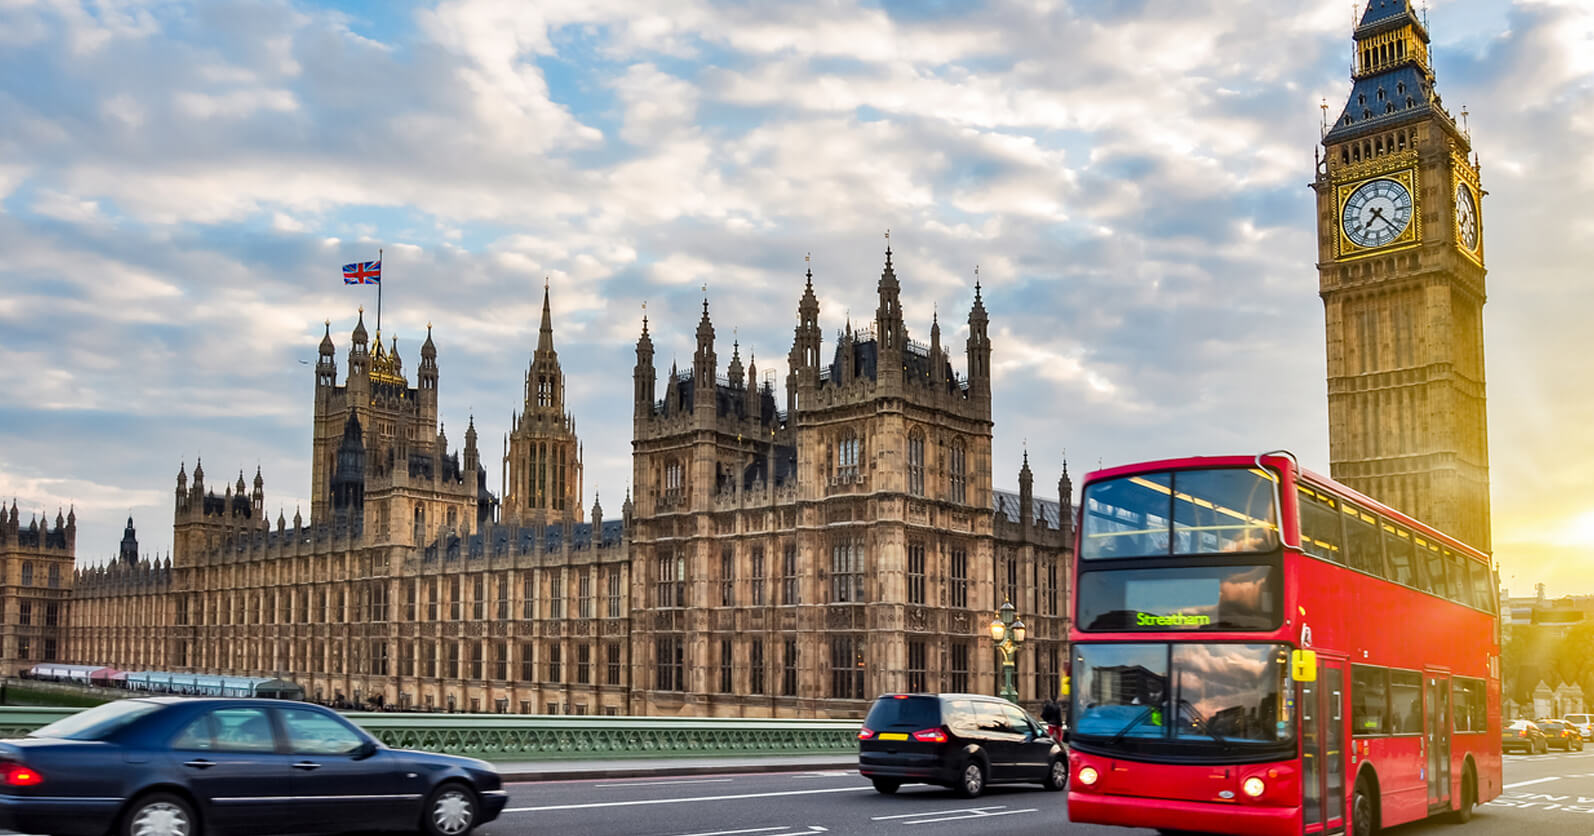 Beautiful landscape of London with big ben and red bus